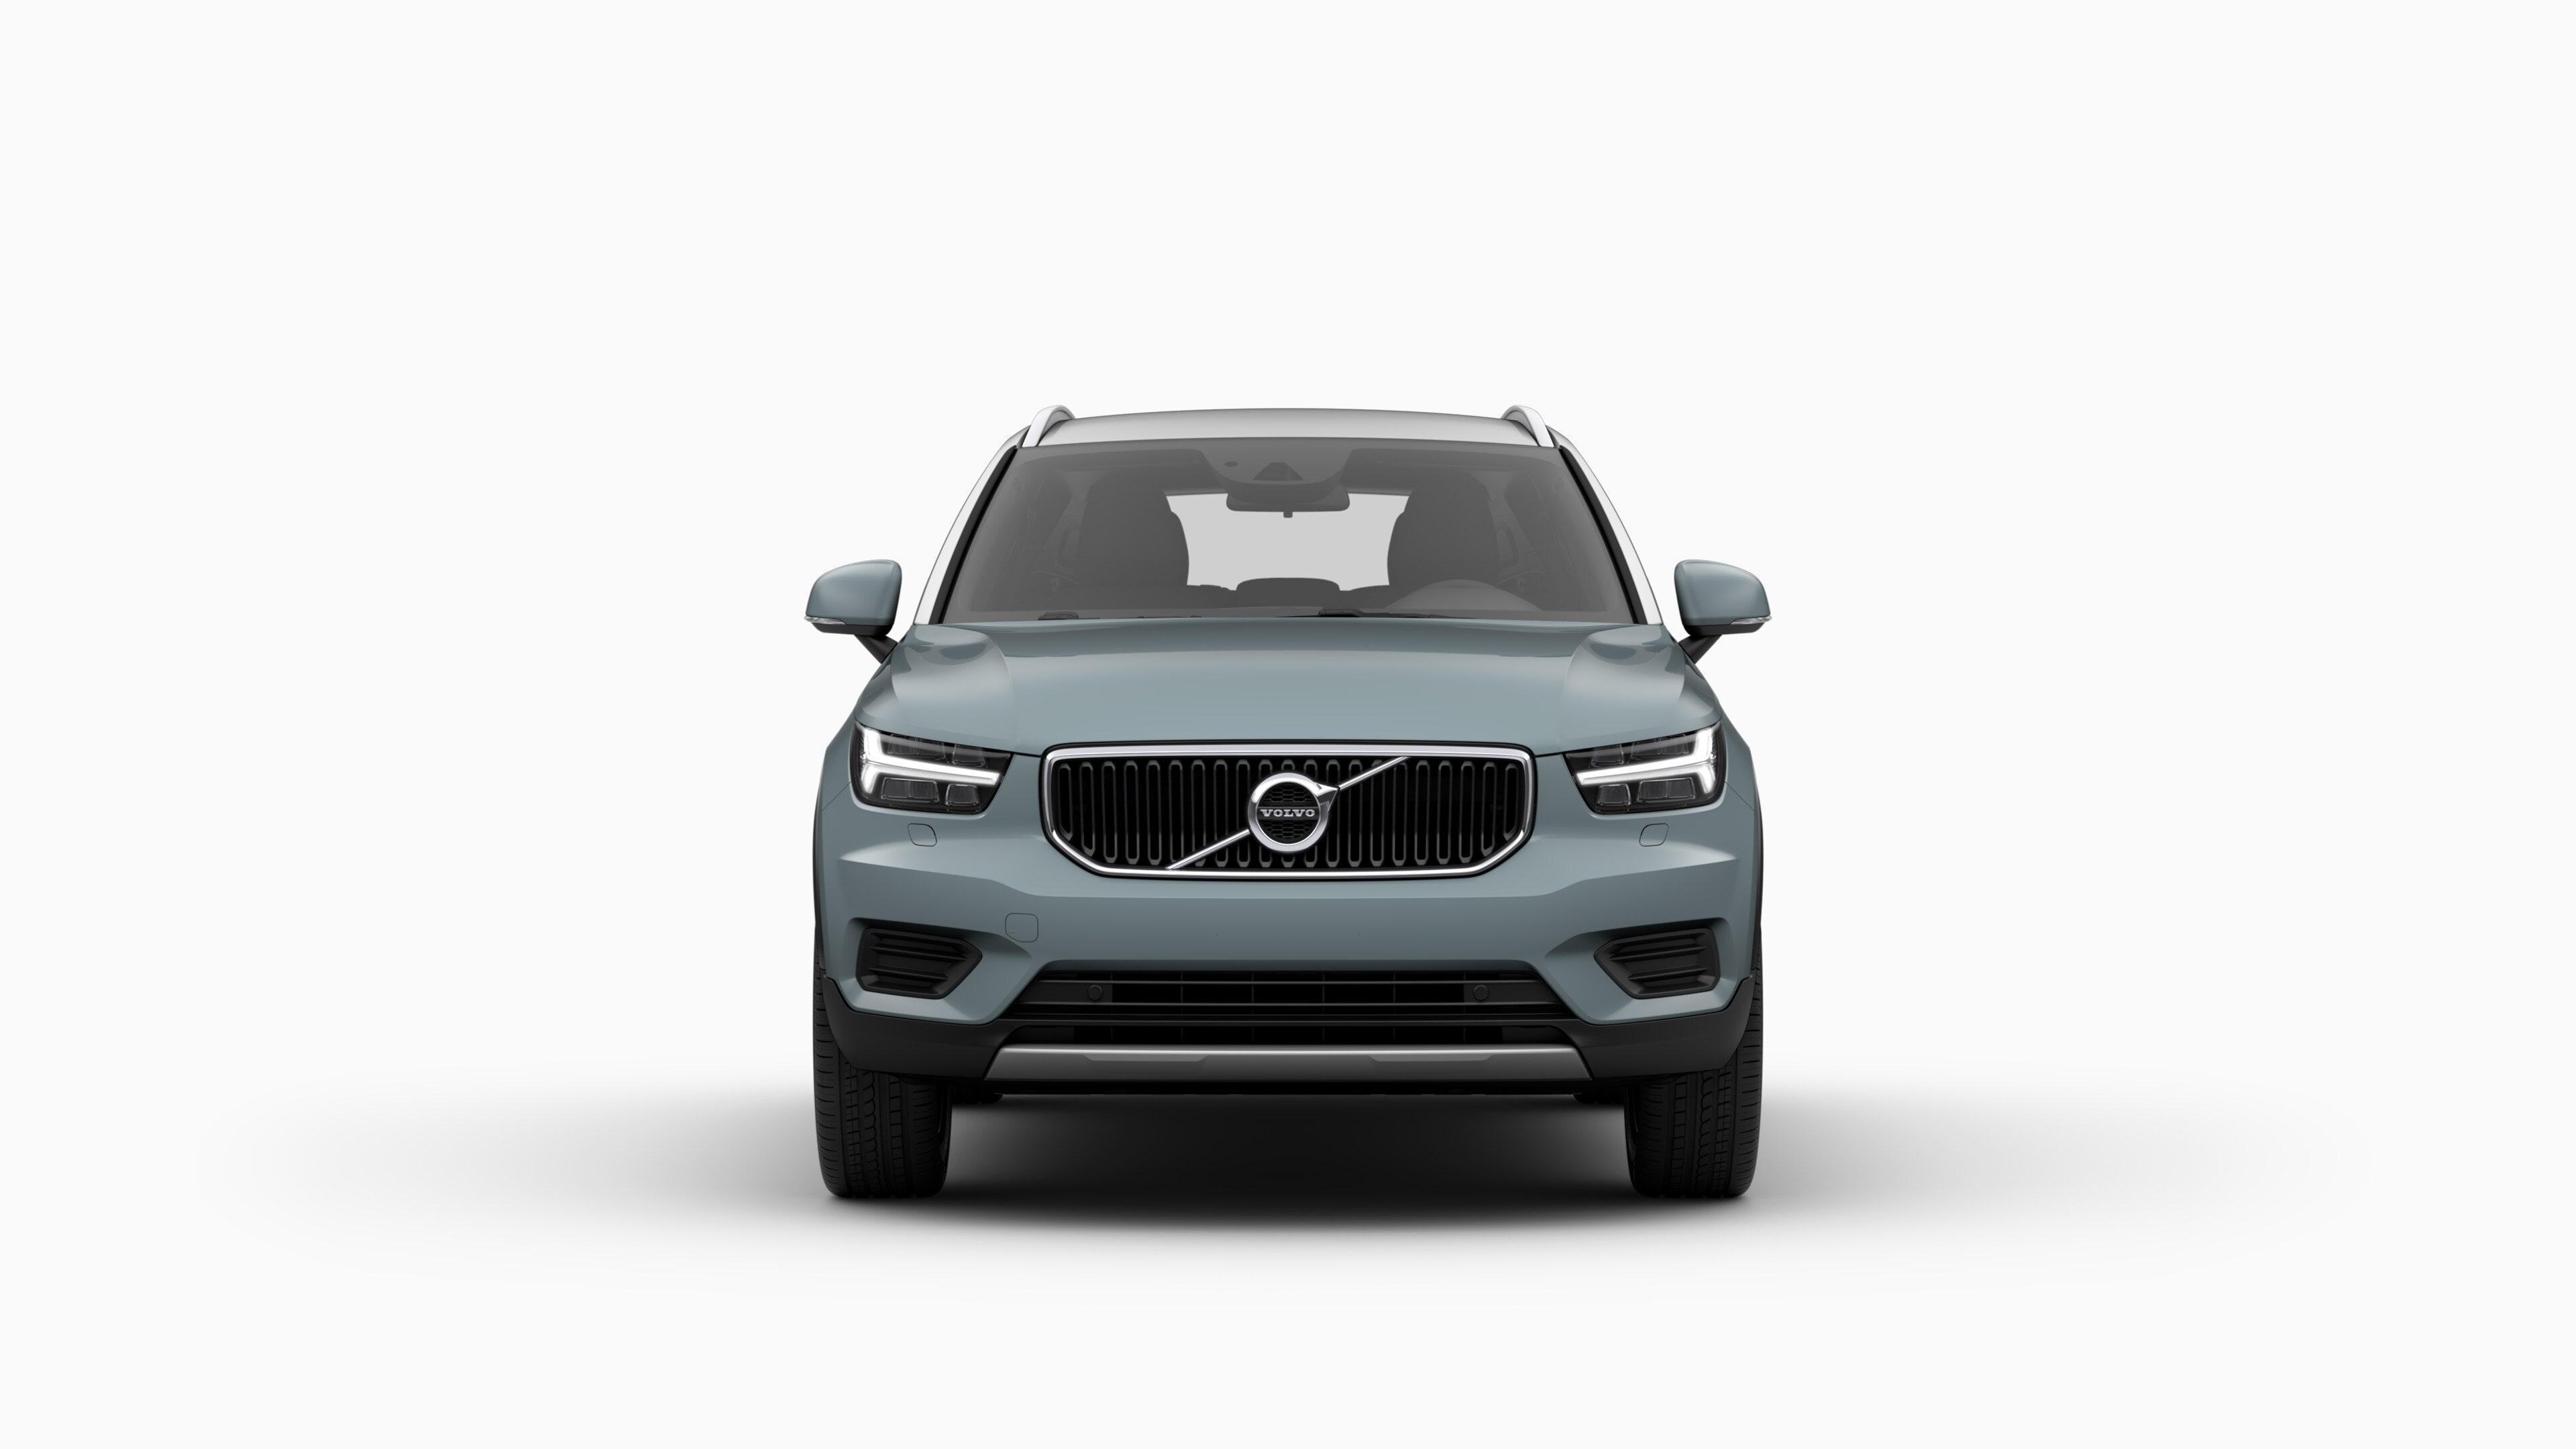 Front view of Volvo XC40